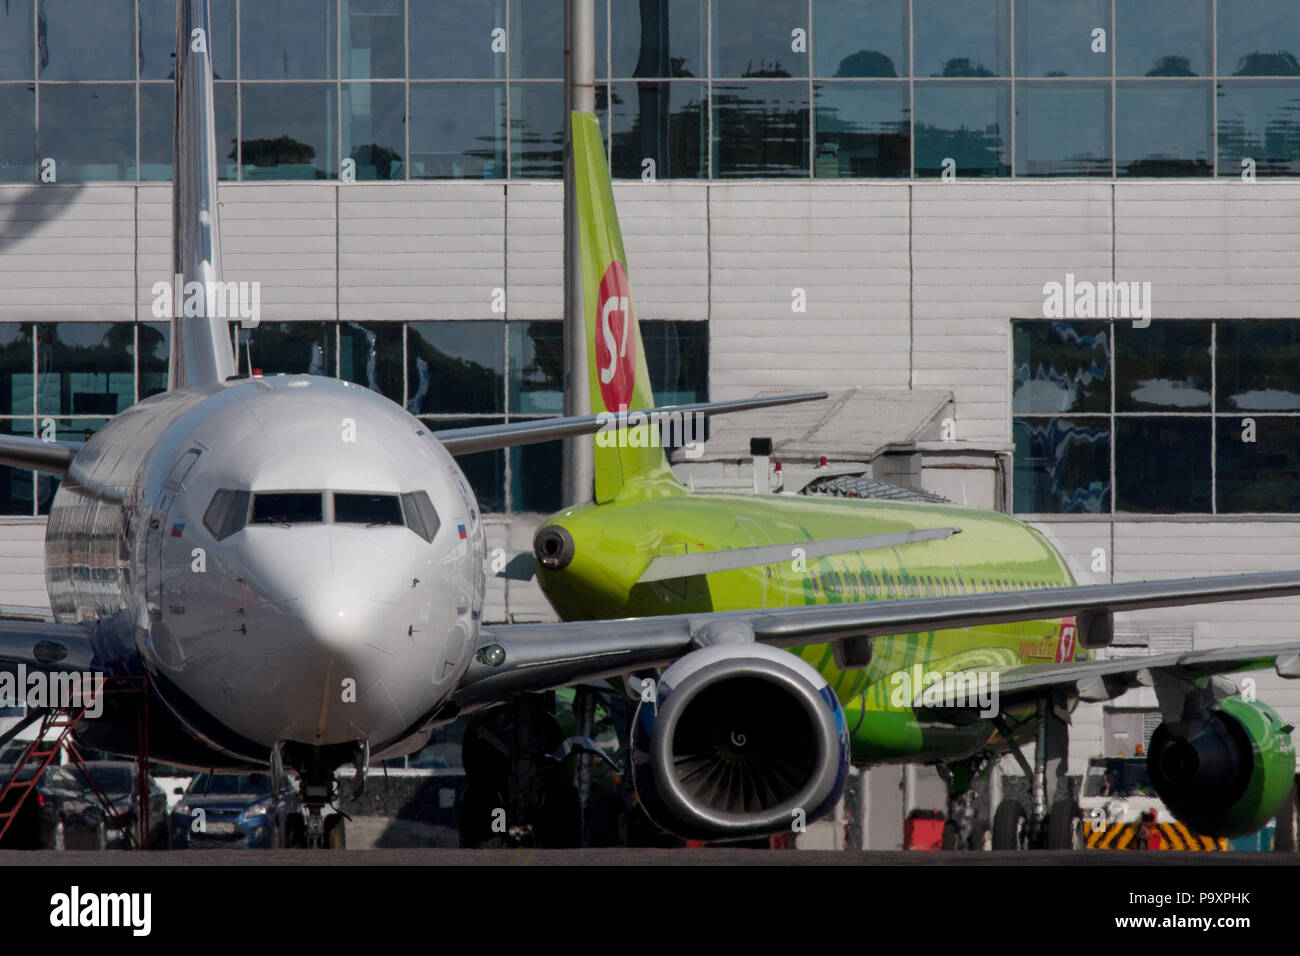 Civil jet airplanes at Domodedovo airport, Moscow Region, Russia. - Stock Image